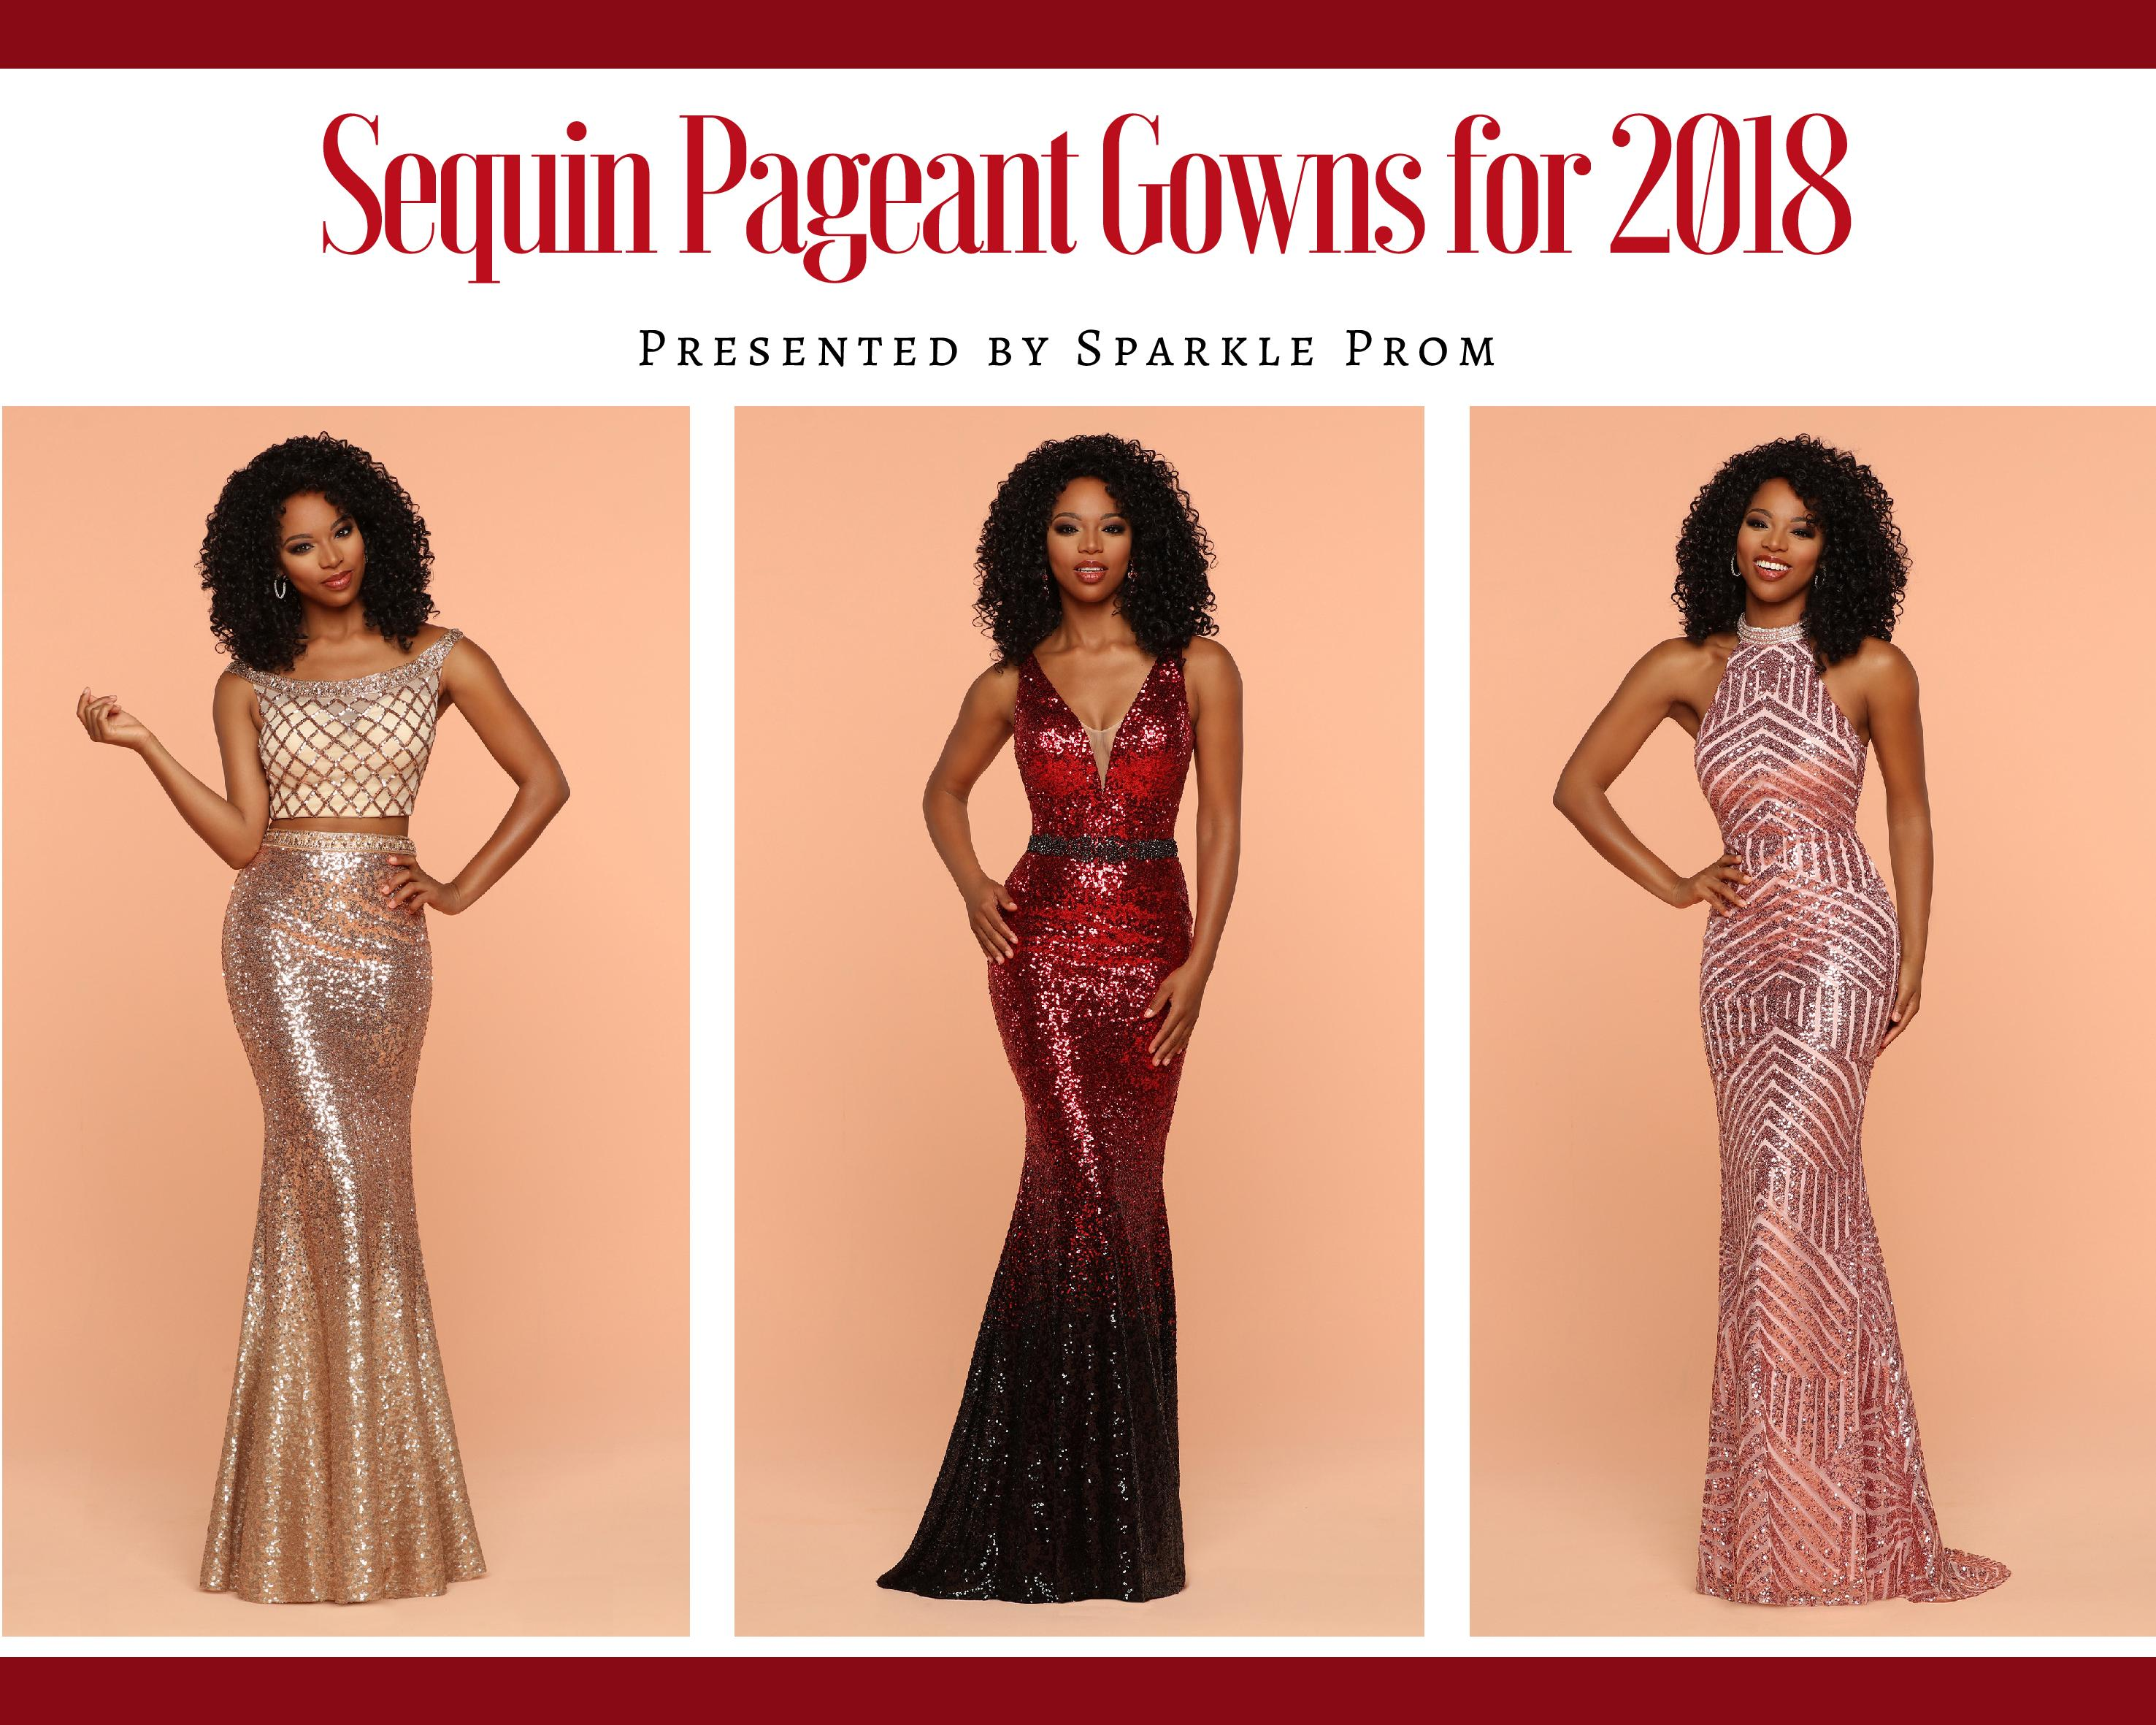 2018 Sequin Pageant Gown Collection - Sparkle Prom Fashion Blog